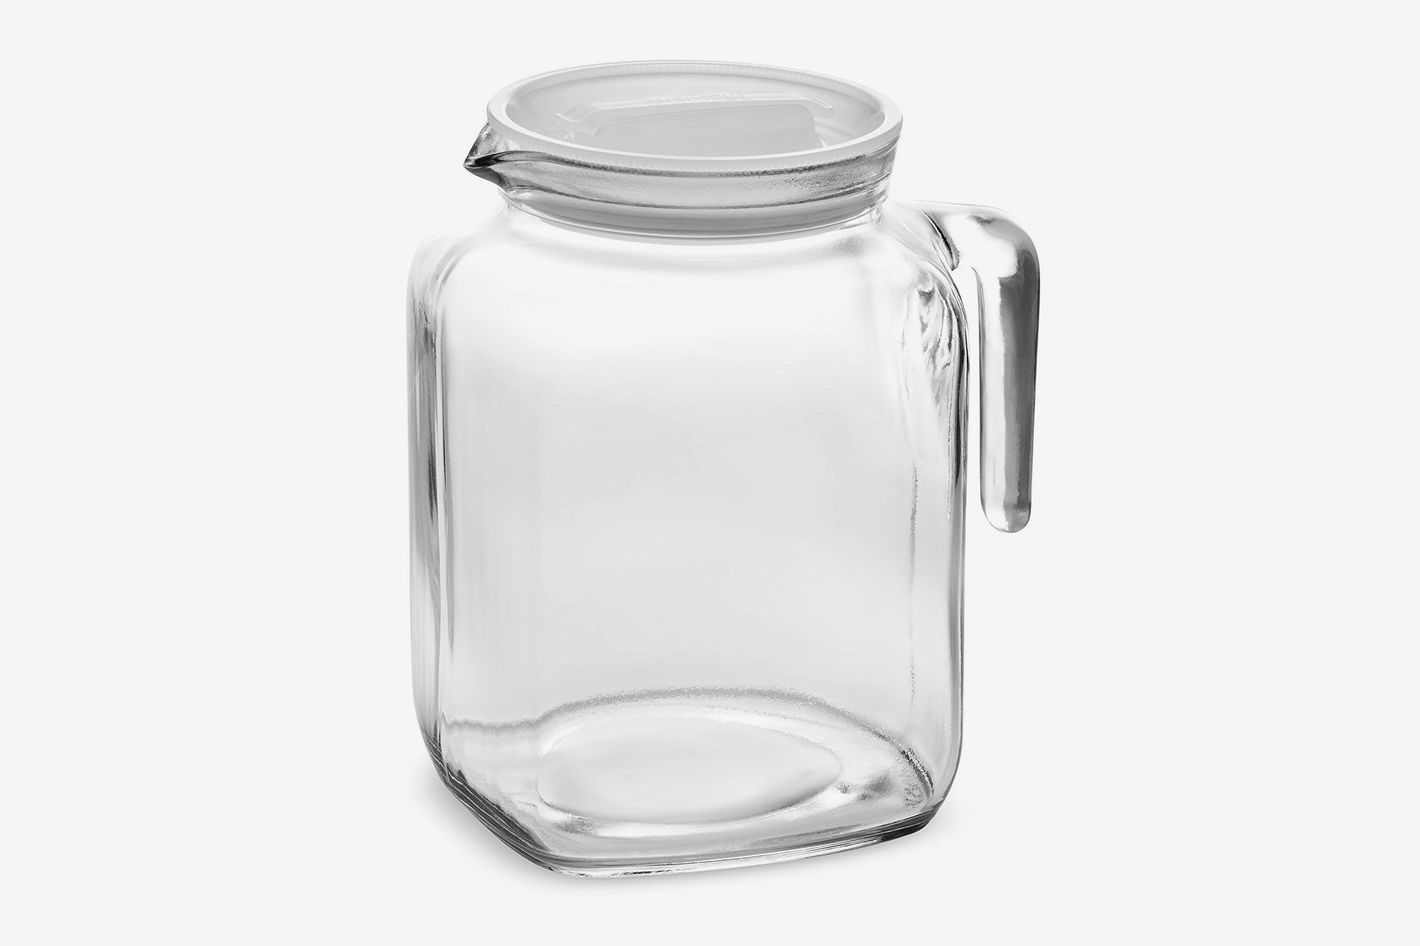 Bormioli rocco hermetic seal glass pitcher with lid and spout 68 ounce